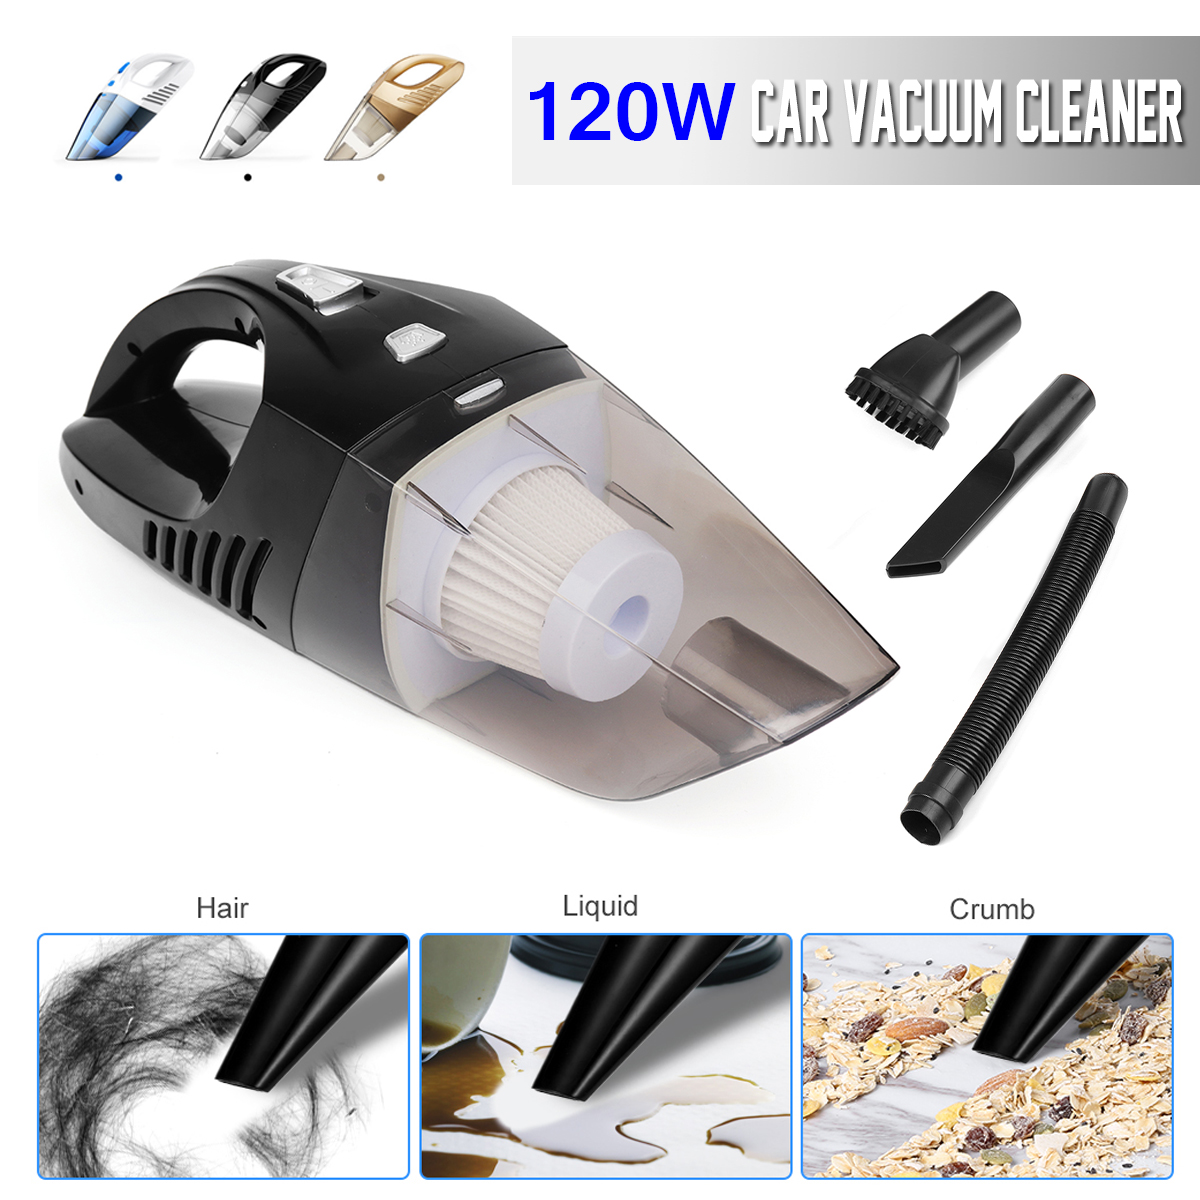 120W High Power Rechargeable Cordless Wet & Dry Car Home Vacuum Cleaner